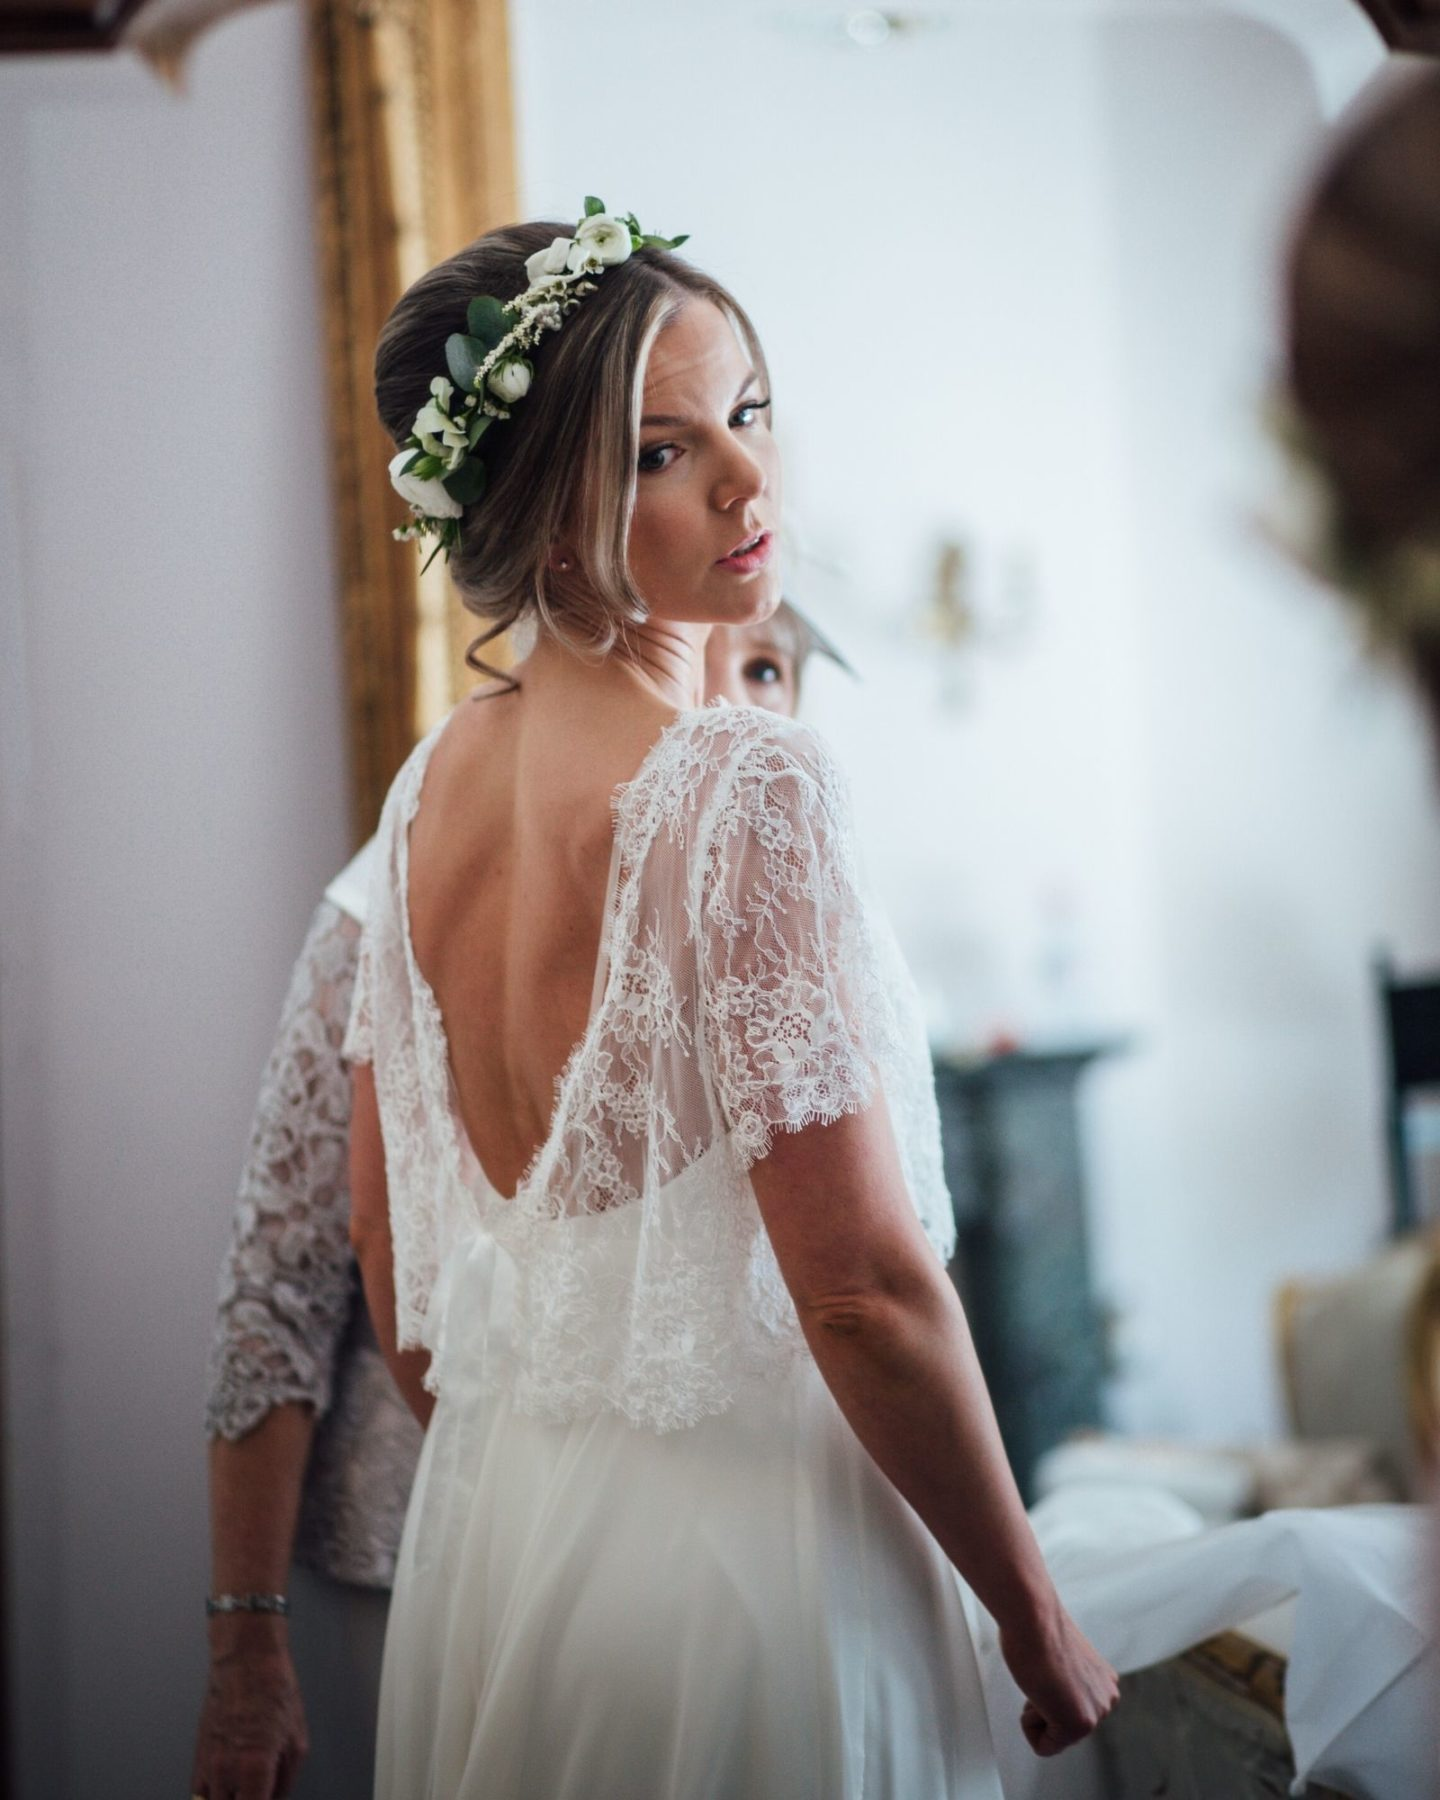 Wedding bolero by Boho Bride wedding dress shop Stratford